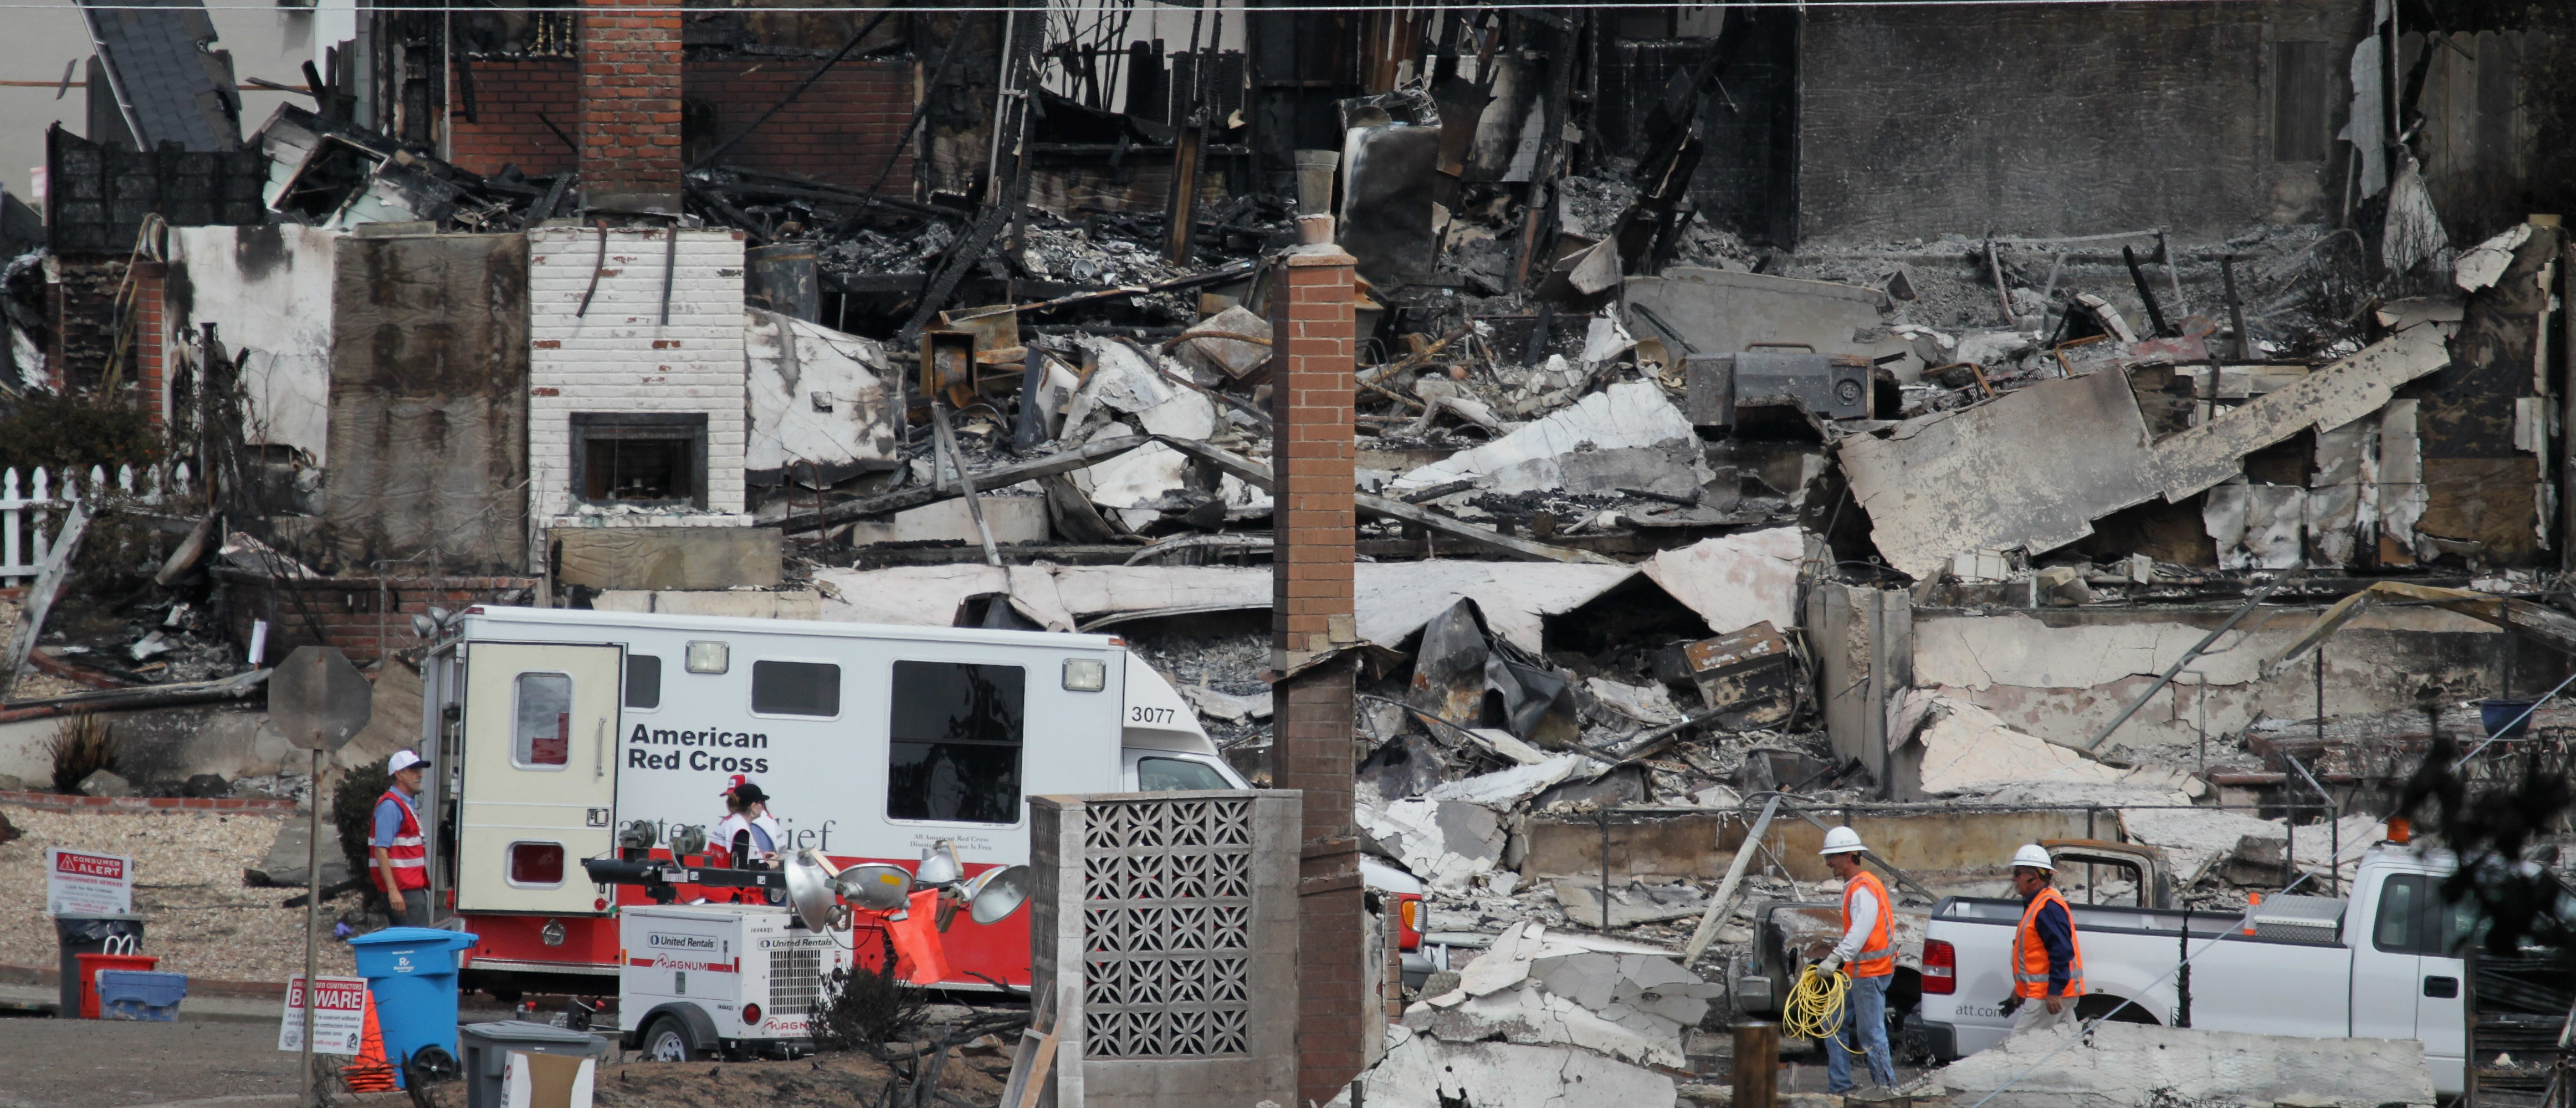 SAN BRUNO, CA - SEPTEMBER 13: A Red Cross truck sits near the epicenter of a deadly gas main explosion September 13, 2010 in San Bruno, California. State regulators have ordered Pacific Gas & Electric to inspect all of their gas lines following a deadly blast that destroyed thirty eight homes, severely damaged dozens more and killed at least four people in a San Bruno, California neighborhood near San Francisco International Airport on Thursday evening. (Photo by Justin Sullivan/Getty Images)